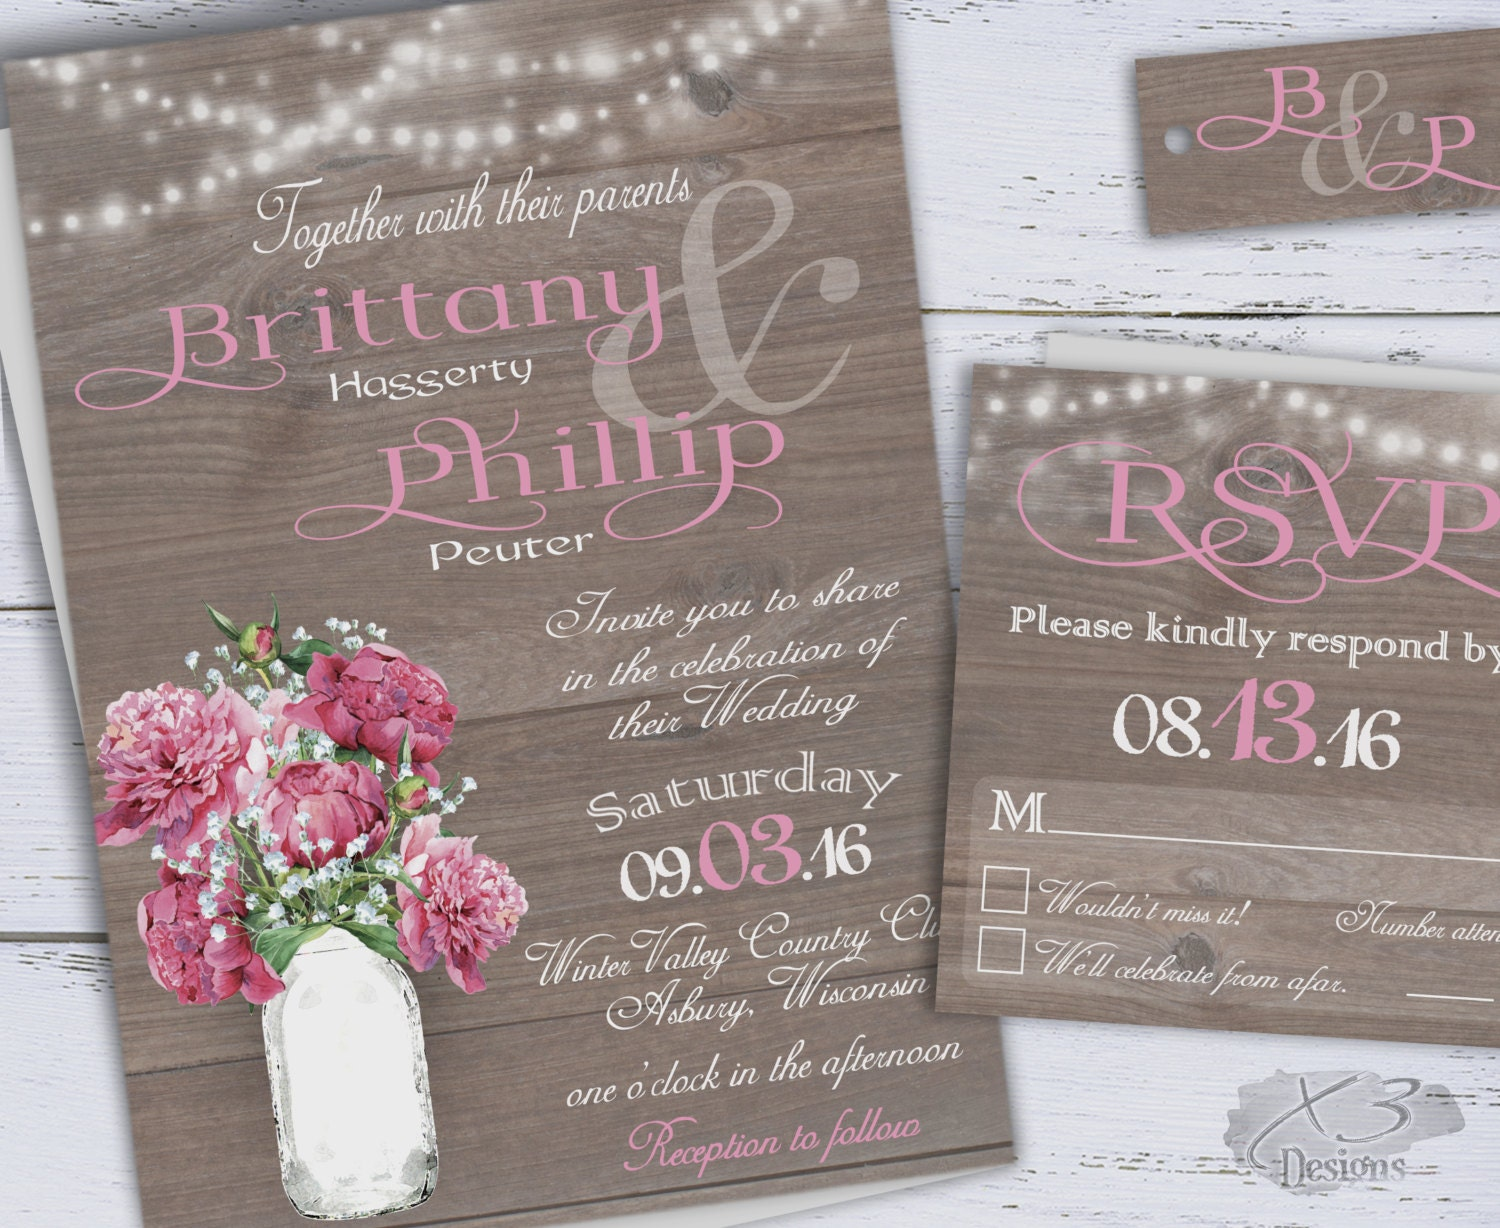 Rustic diy printable wedding invitation spring wedding for Diy rustic chic wedding invitations free printable template ahandcraftedwedding